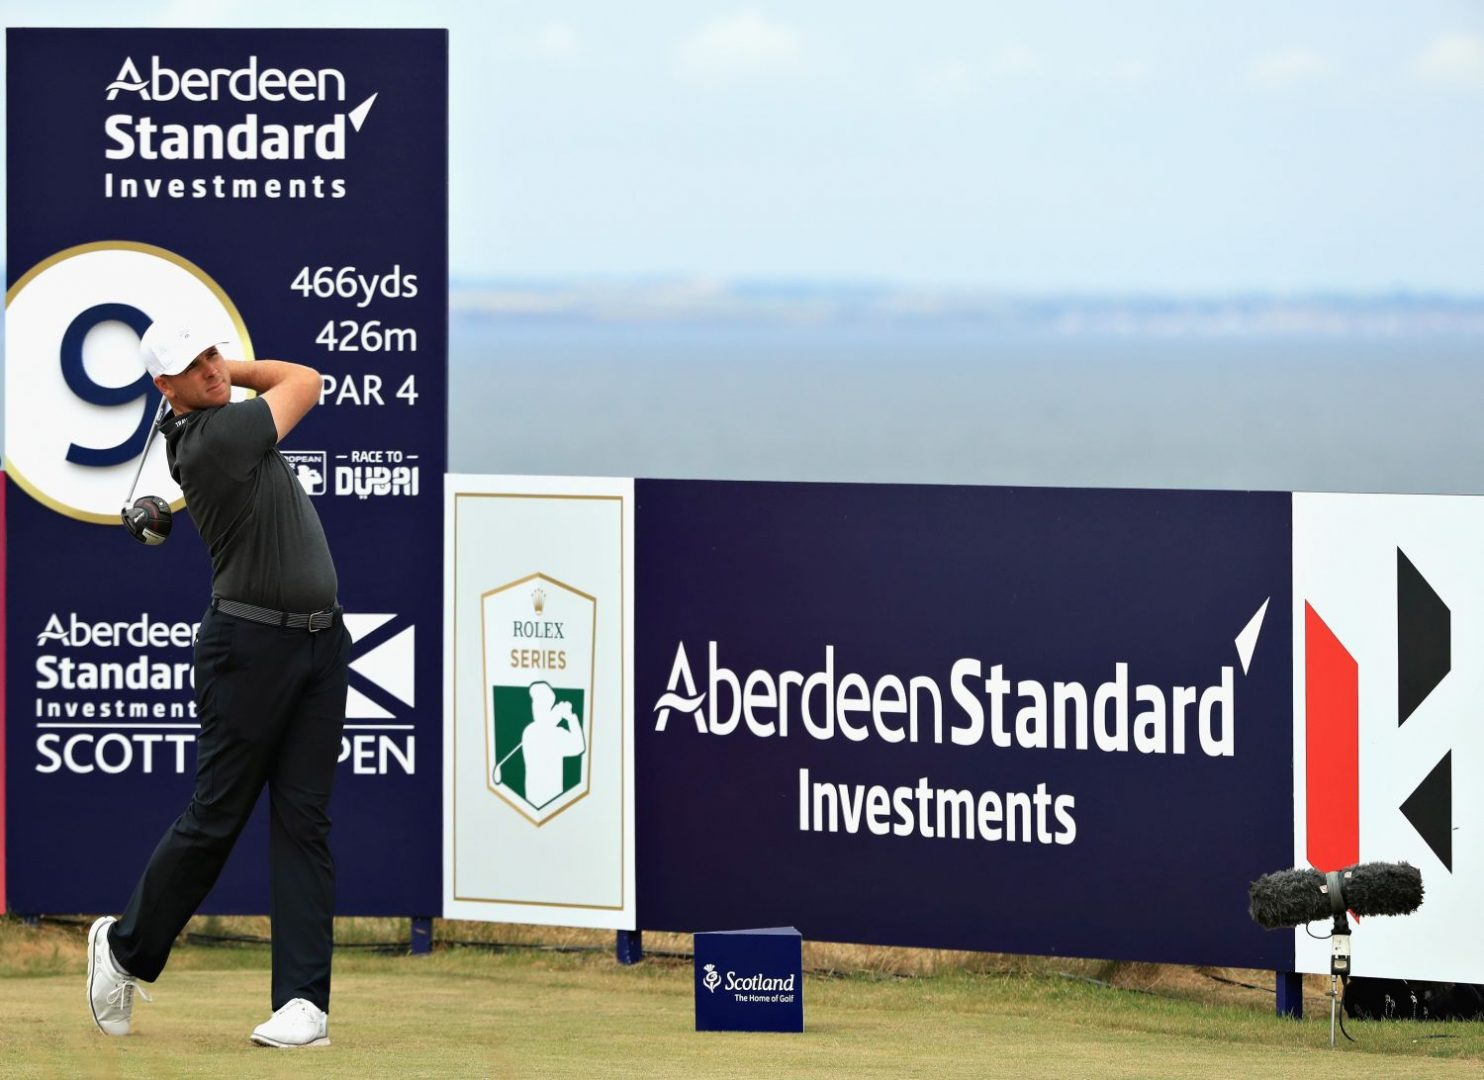 GULLANE, SCOTLAND - JULY 12: Luke List of USA takes his tee shot on hole nine during day one of the Aberdeen Standard Investments Scottish Open at Gullane Golf Course on July 12, 2018 in Gullane, Scotland.  (Photo by Andrew Redington/Getty Images)